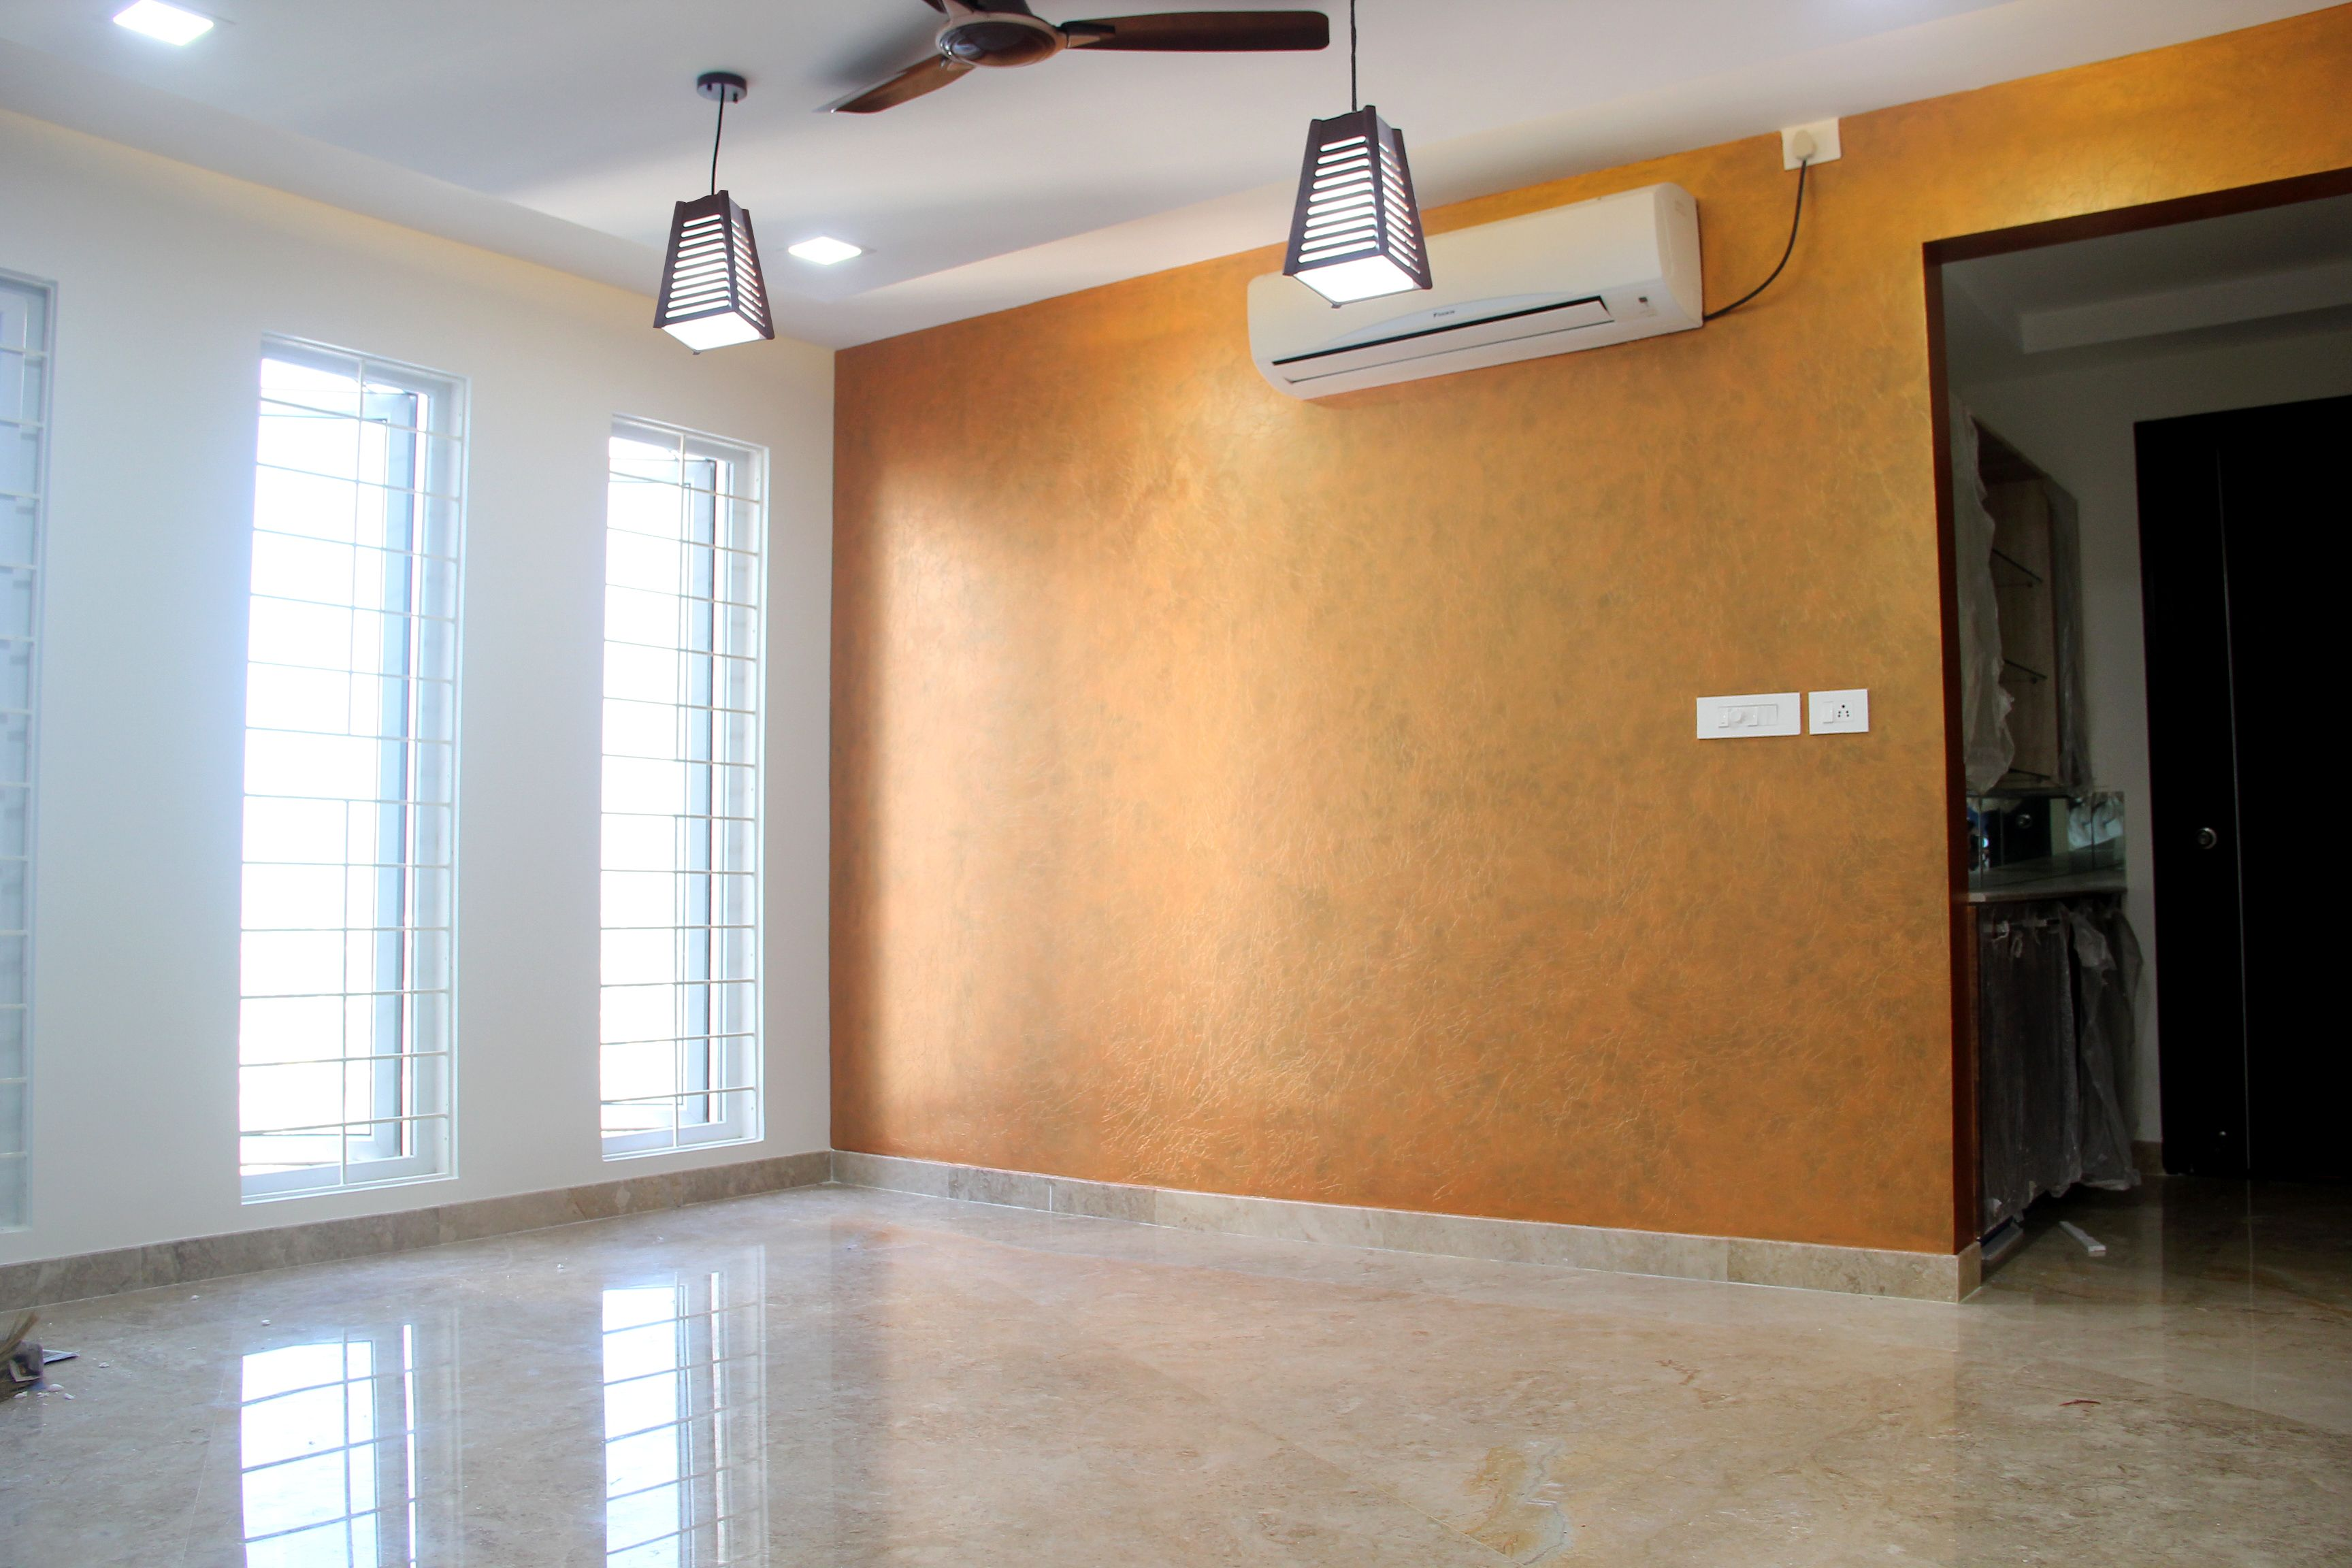 Crinkle Metallics Base Coat 8454 Dull Birch Top Coat M 0578 Valcano Gives Trendy Look To The Interior Paint Colors For Living Room Interior Ceiling Lights